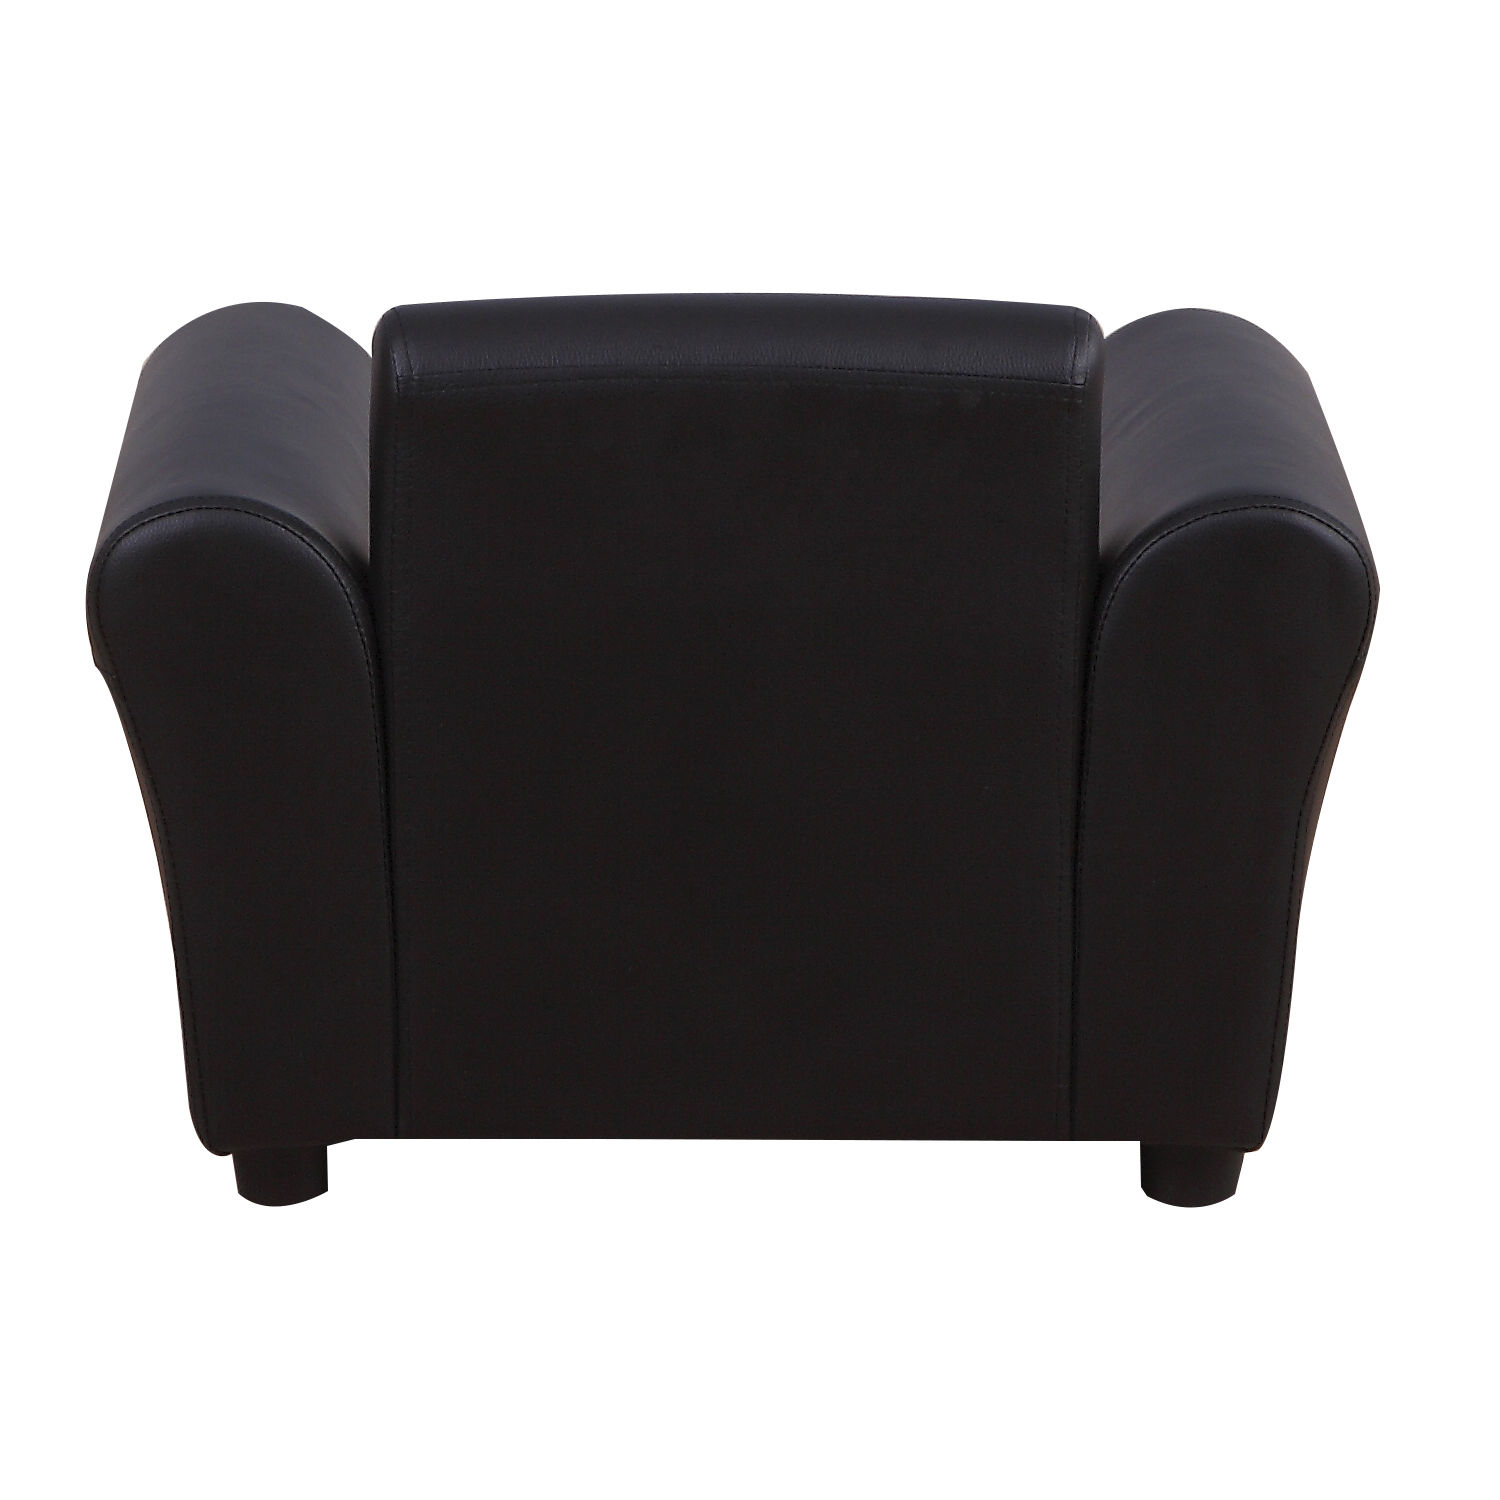 Kids-Sofa-Children-Chair-Seat-Armchair-W-Footstool-Playroom-Bedroom-Black-Pink thumbnail 6